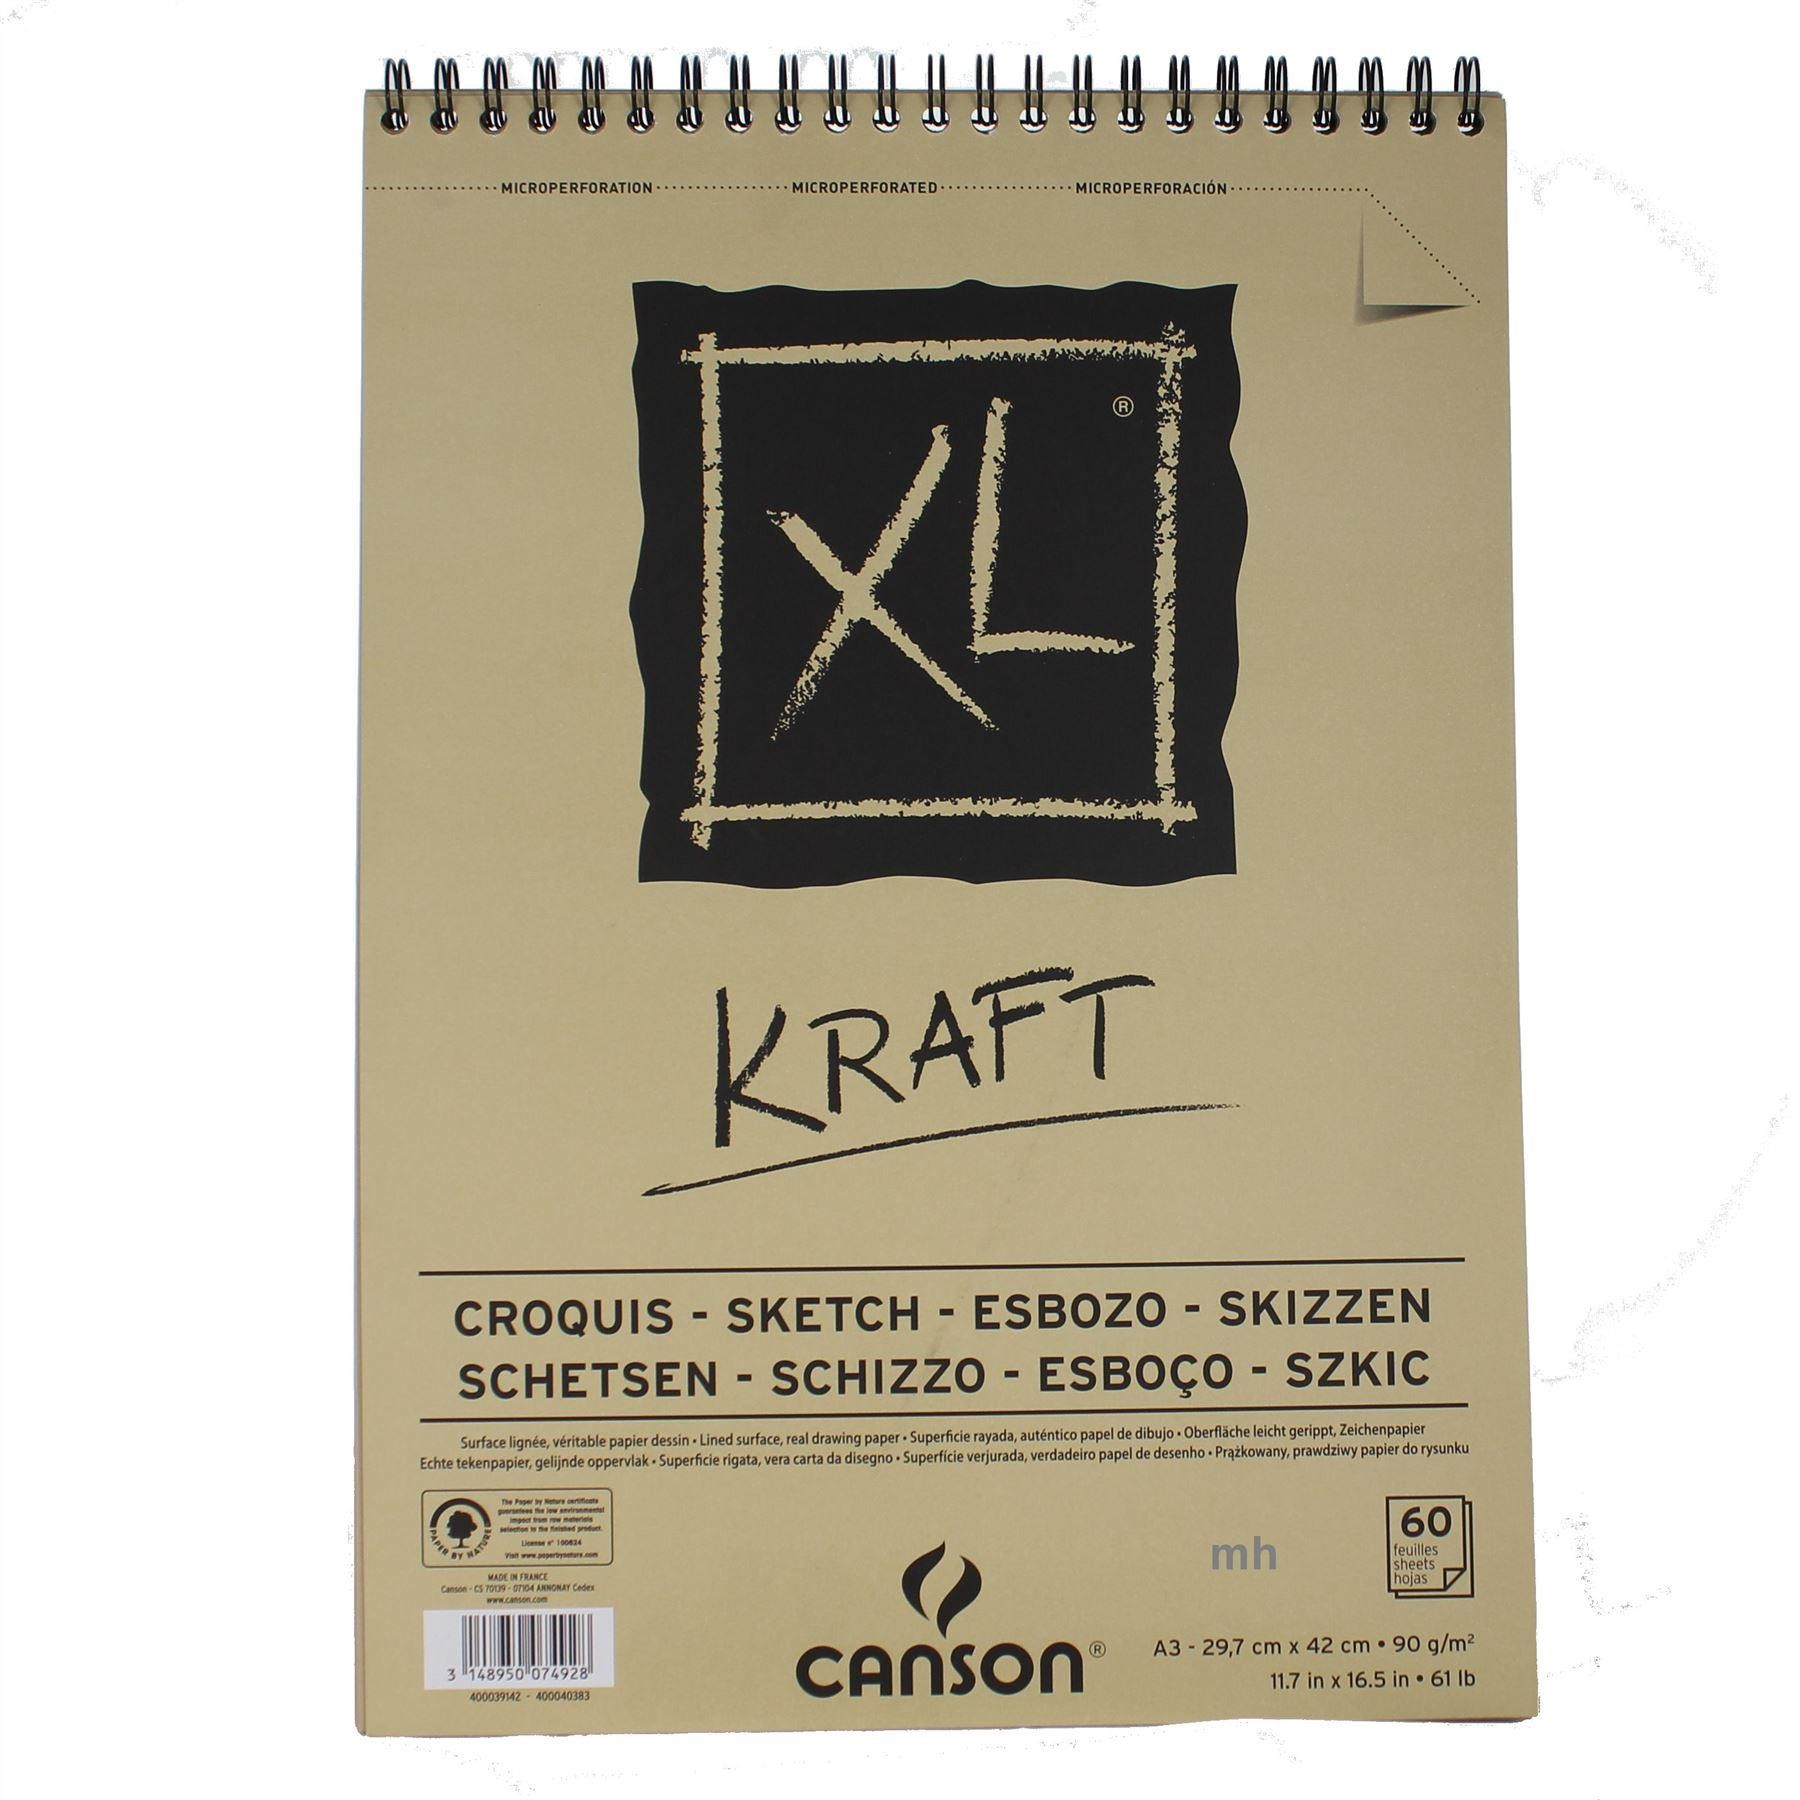 Canson XL Kraft pad, brown paper , A3, A4 60 sheets 90gsm